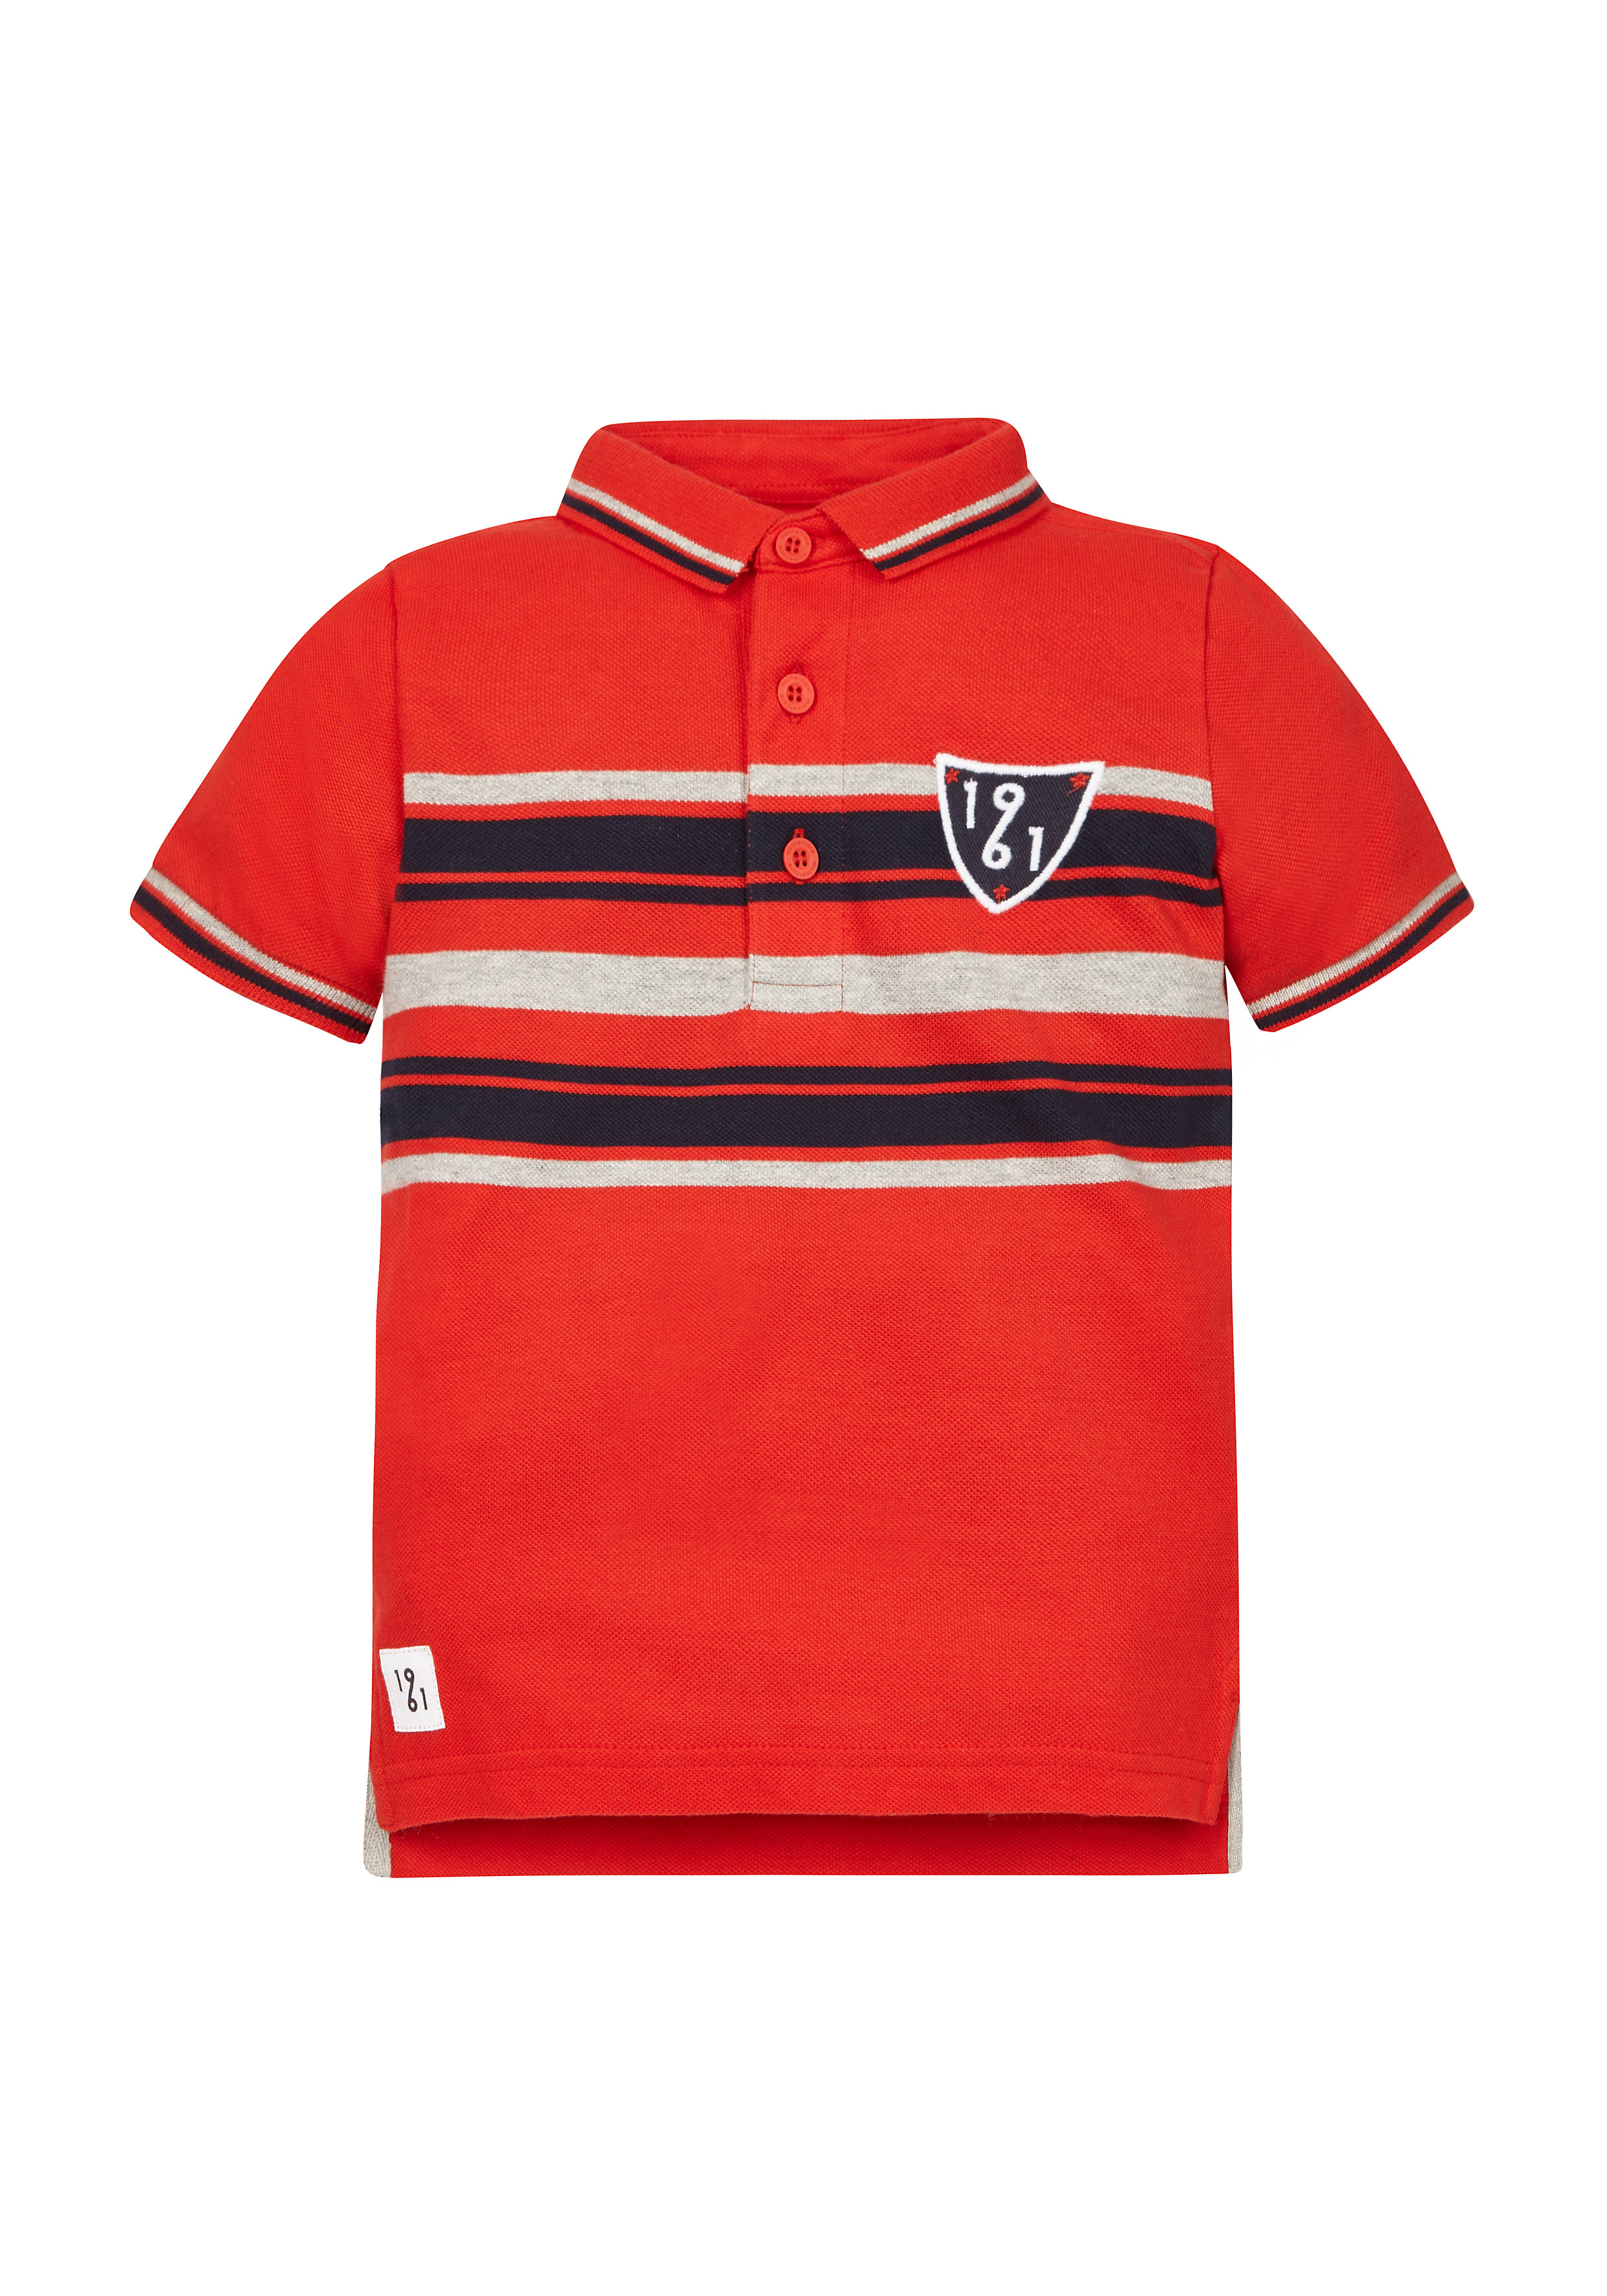 Mothercare | Boys Red Striped Polo Shirt - Red